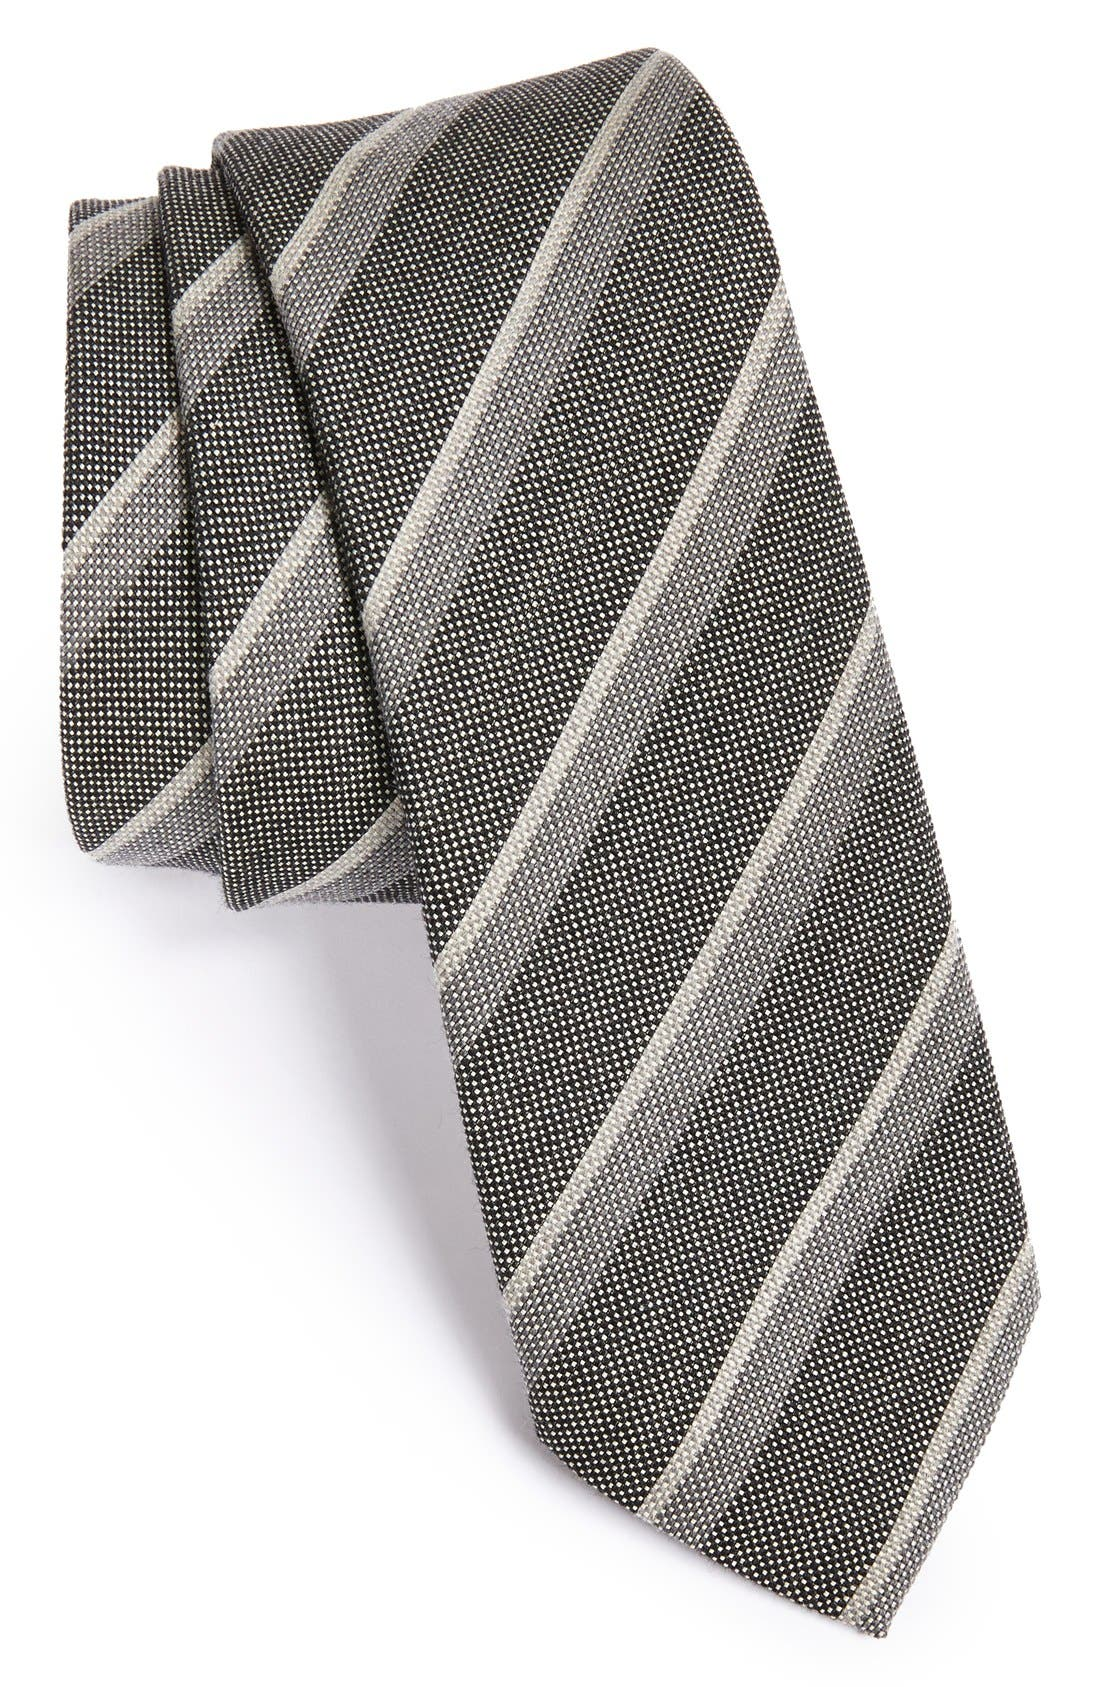 Alternate Image 1 Selected - John Varvatos Collection Woven Cotton Blend Tie